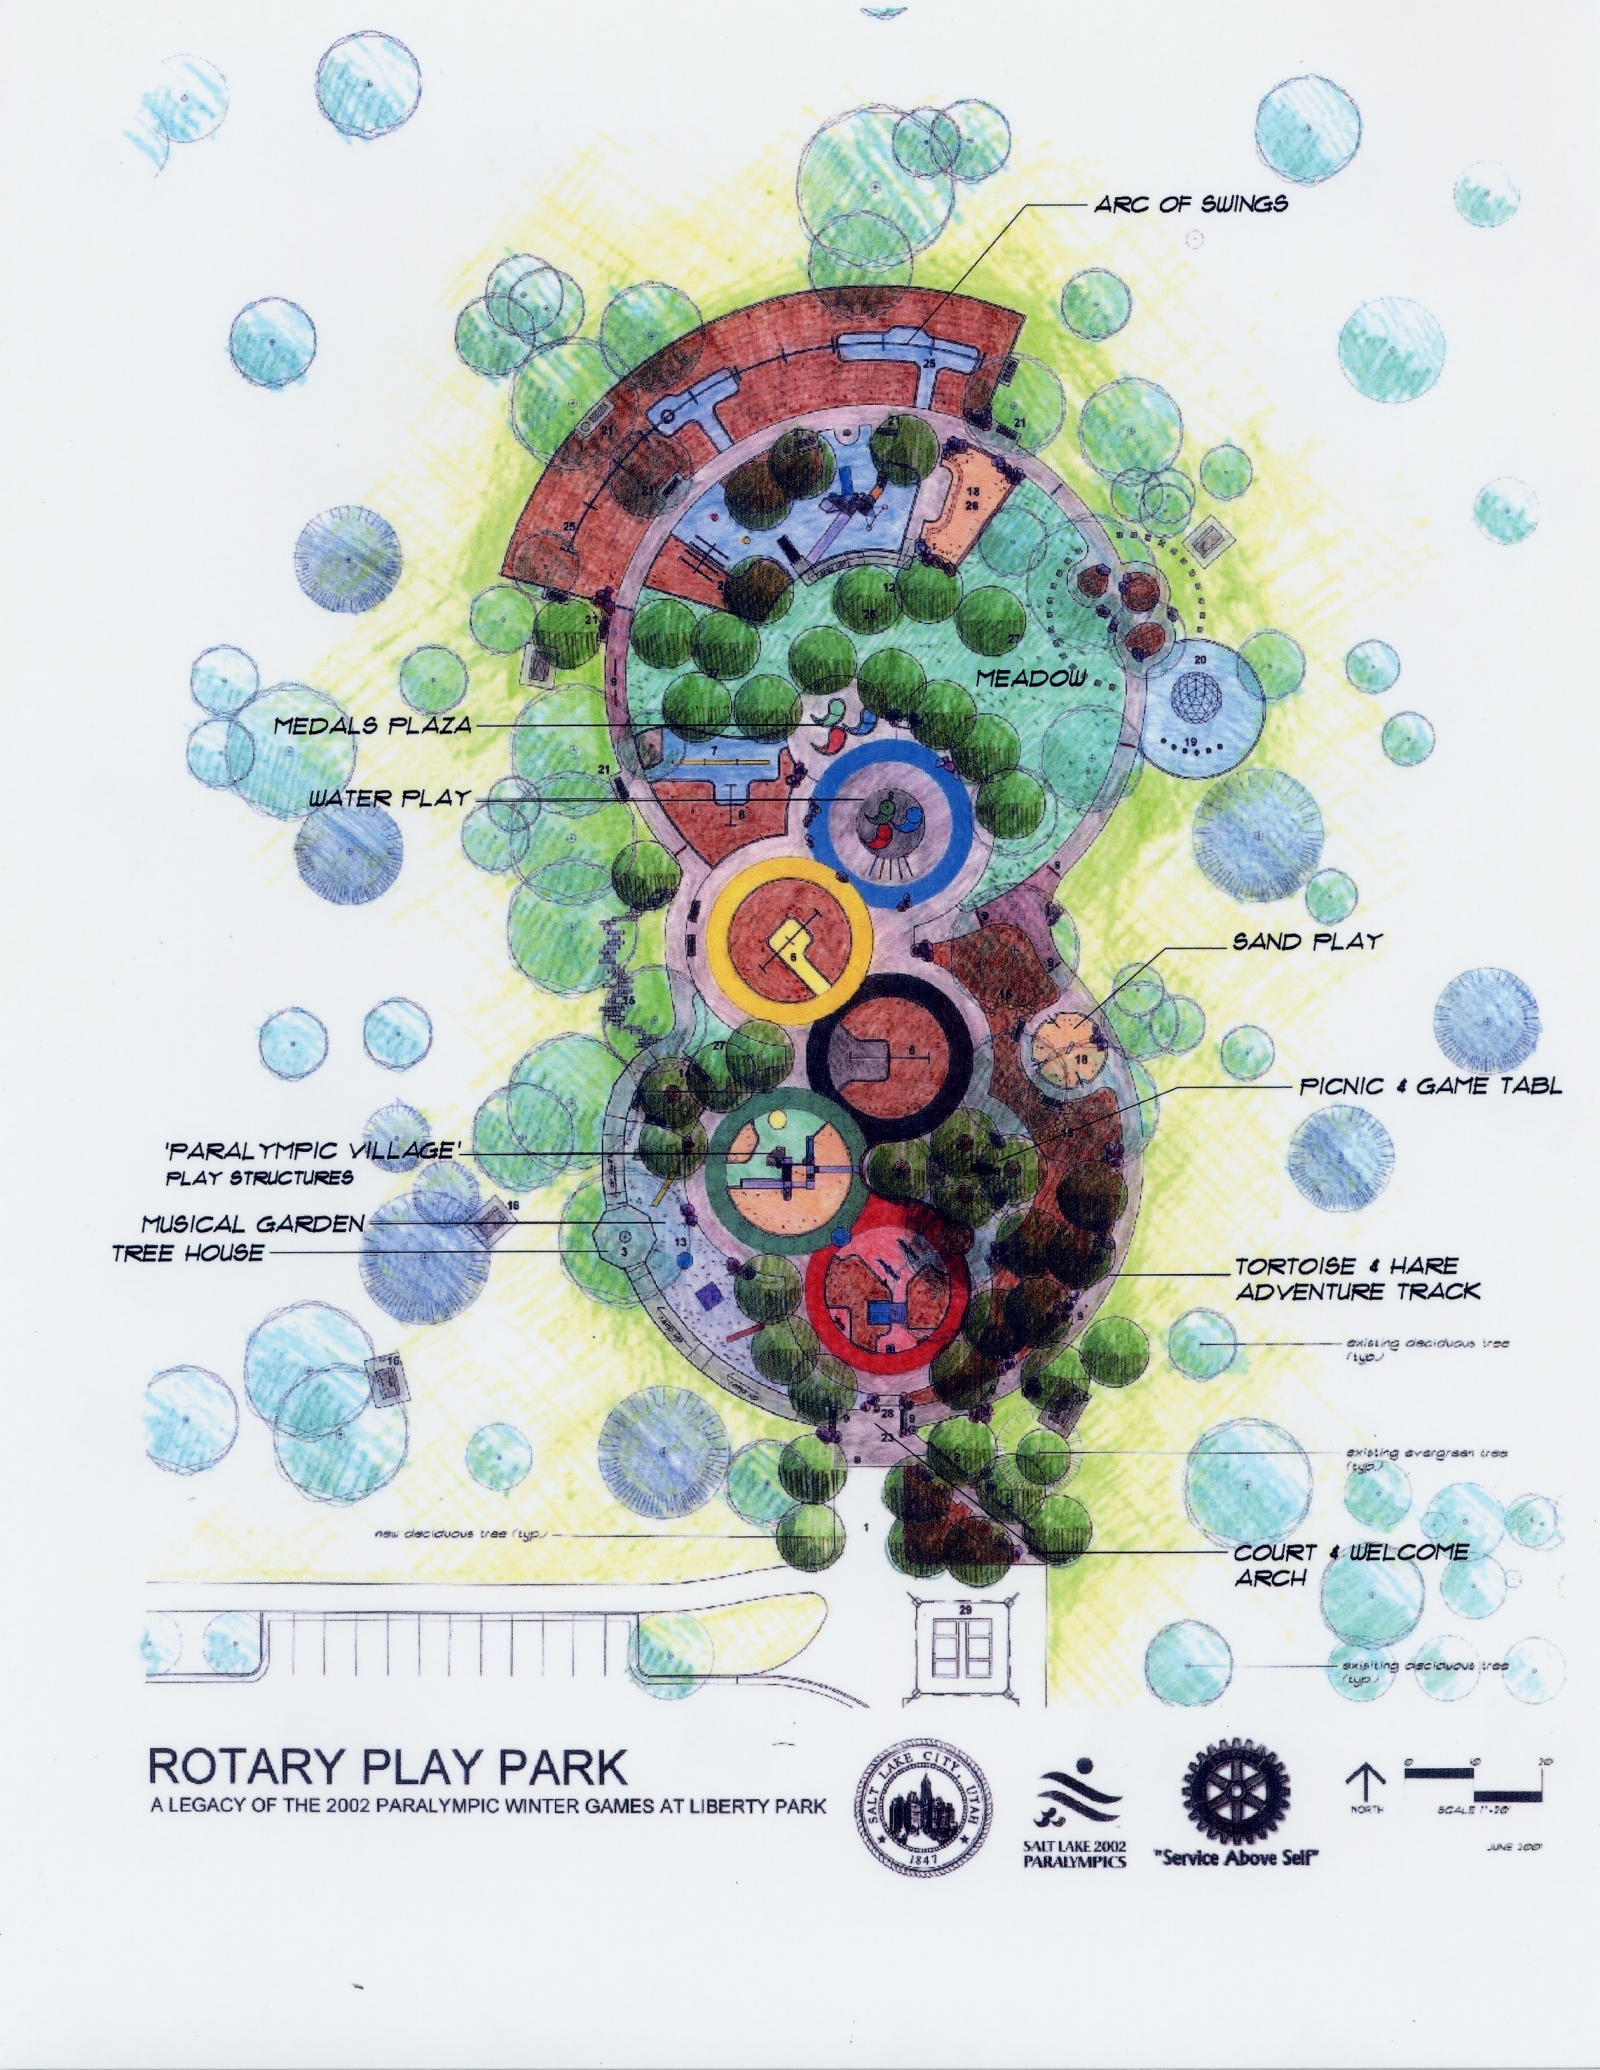 Rotary/Paralympic Play Park at Liberty Park